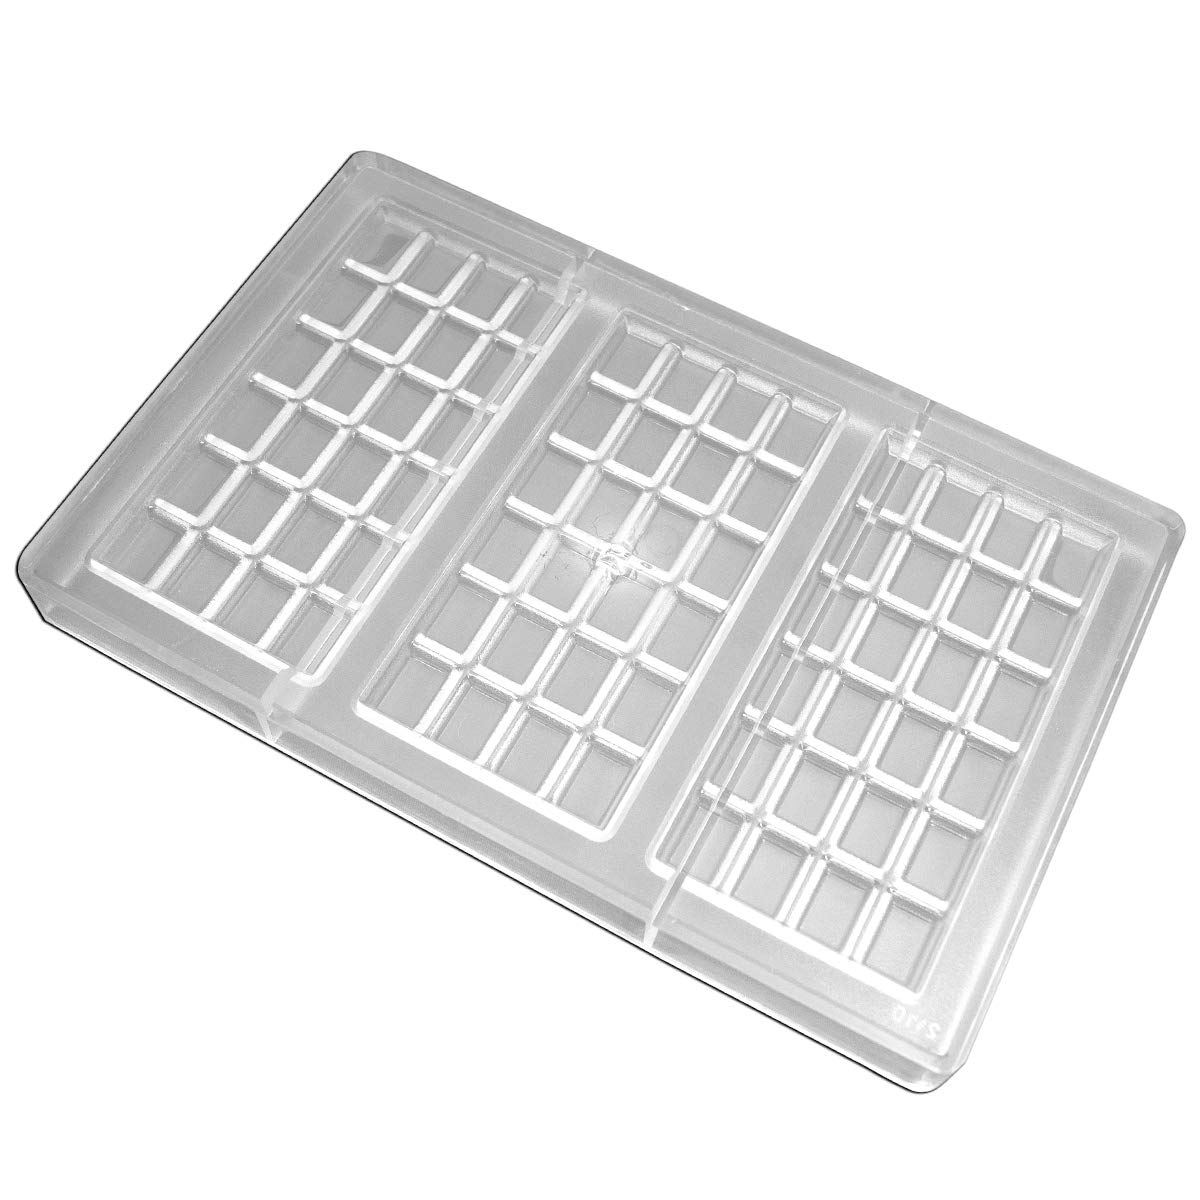 Fat Daddio's PCM-2110 Polycarbonate Bar Candy & Chocolate Mold, 11 x 7 Inch, Translucent